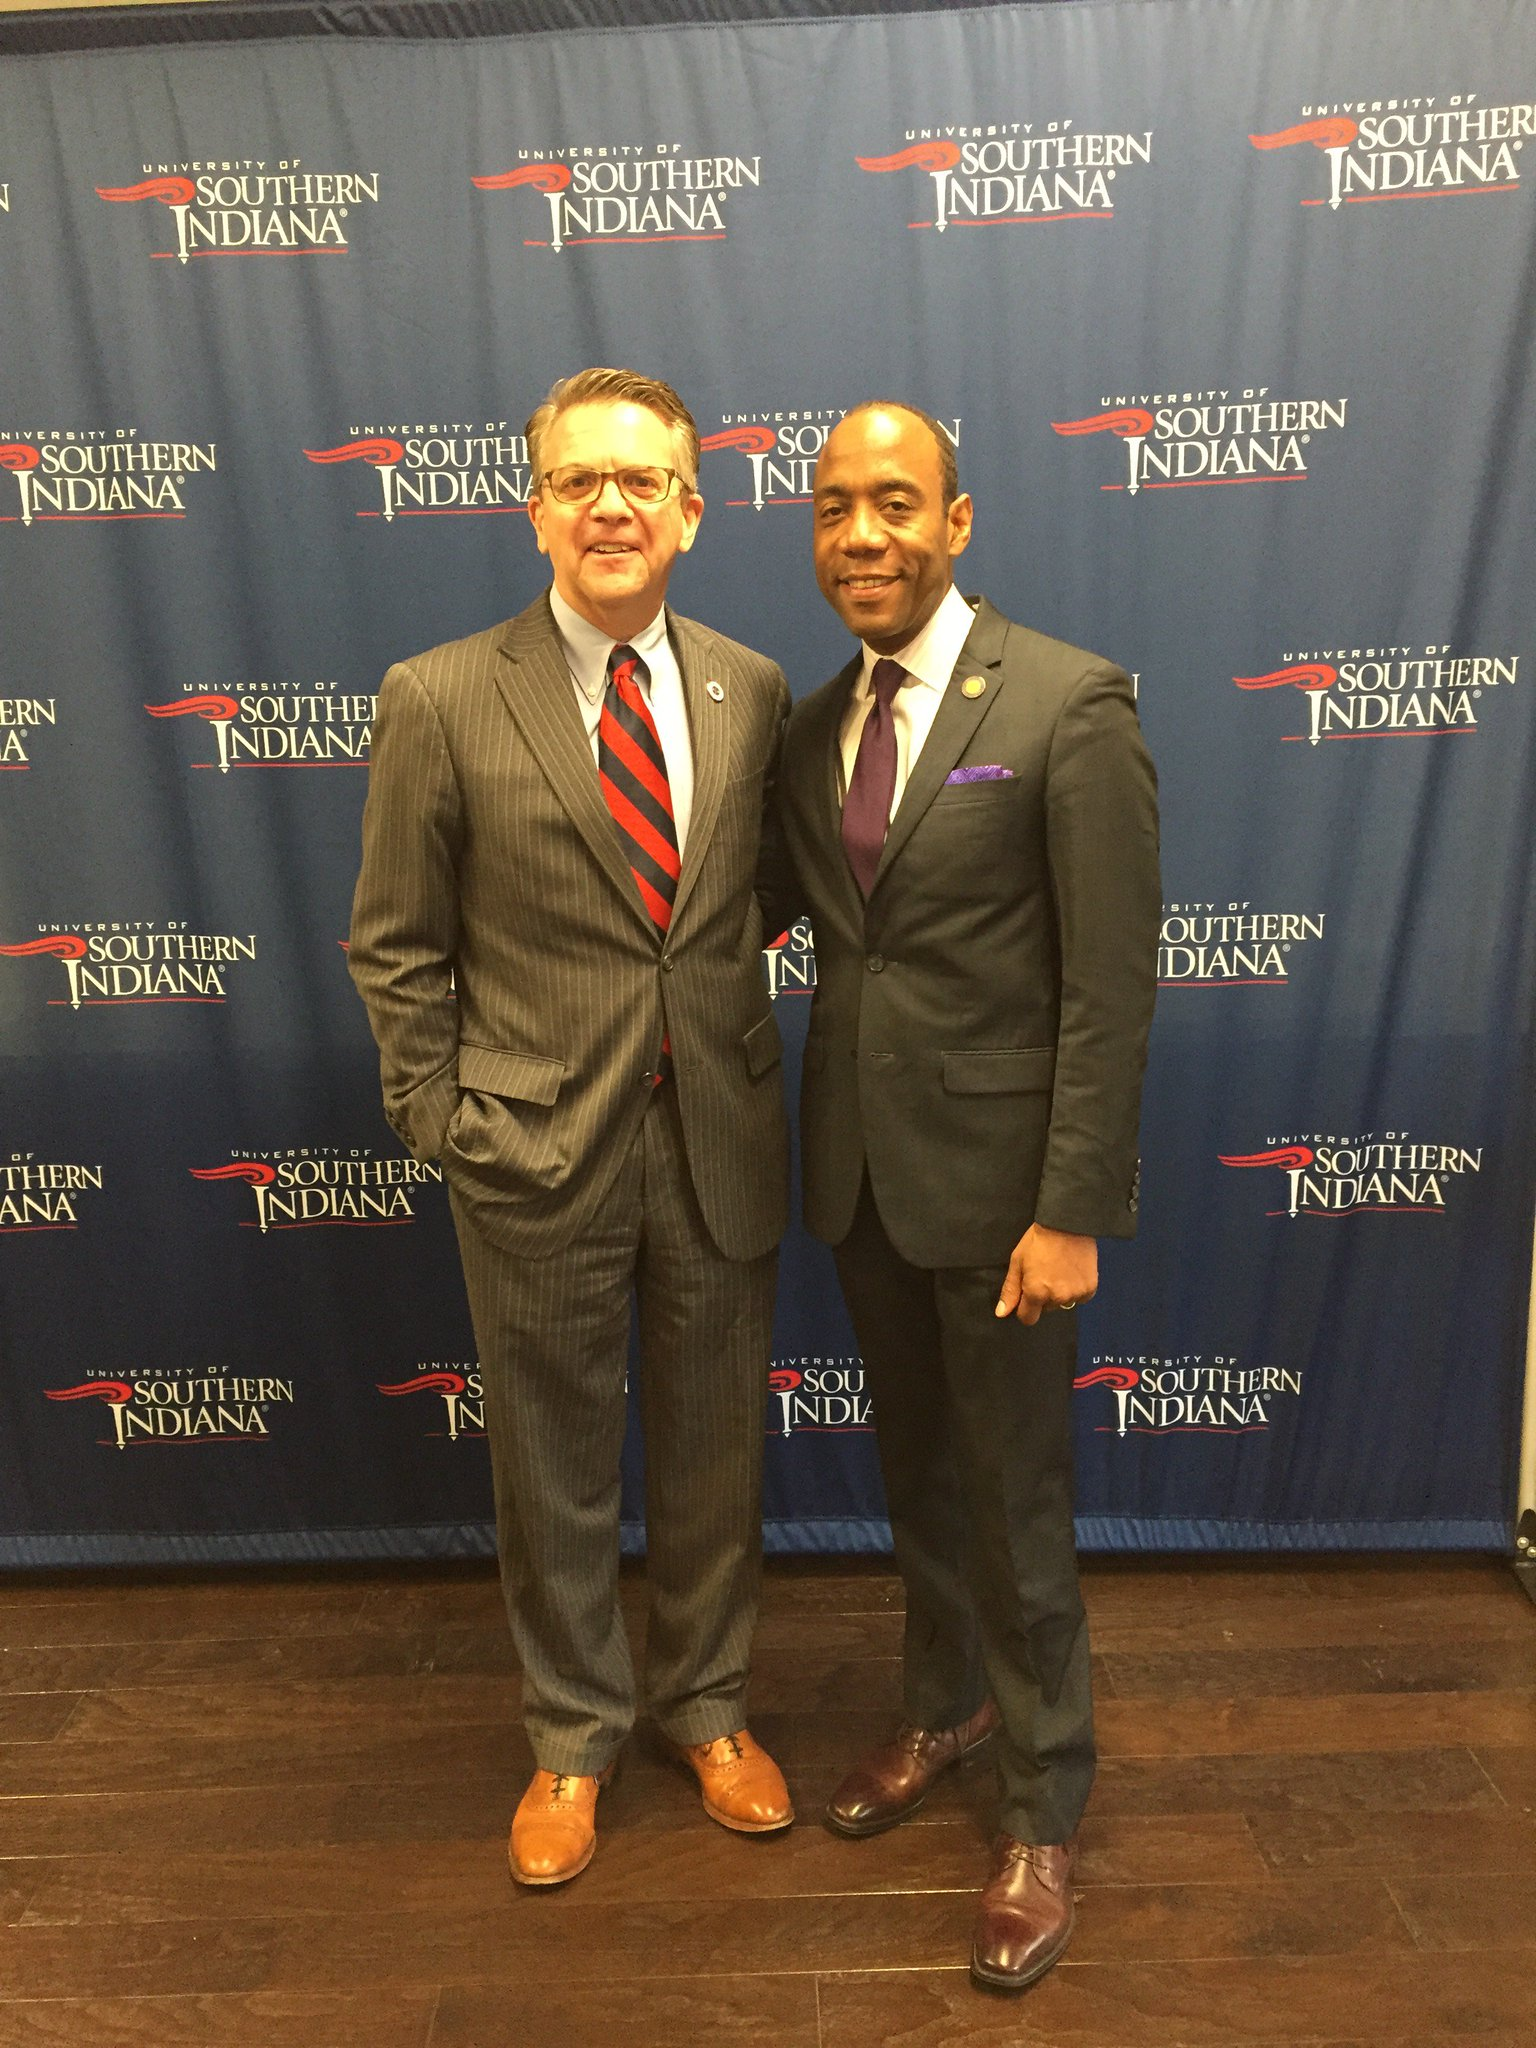 Honoring the legacy of Dr. Martin Luther King Jr. with NAACP Pres. Cornell William Brooks at annual MLKing lunch at USI. https://t.co/ZdZWOoW6Gb